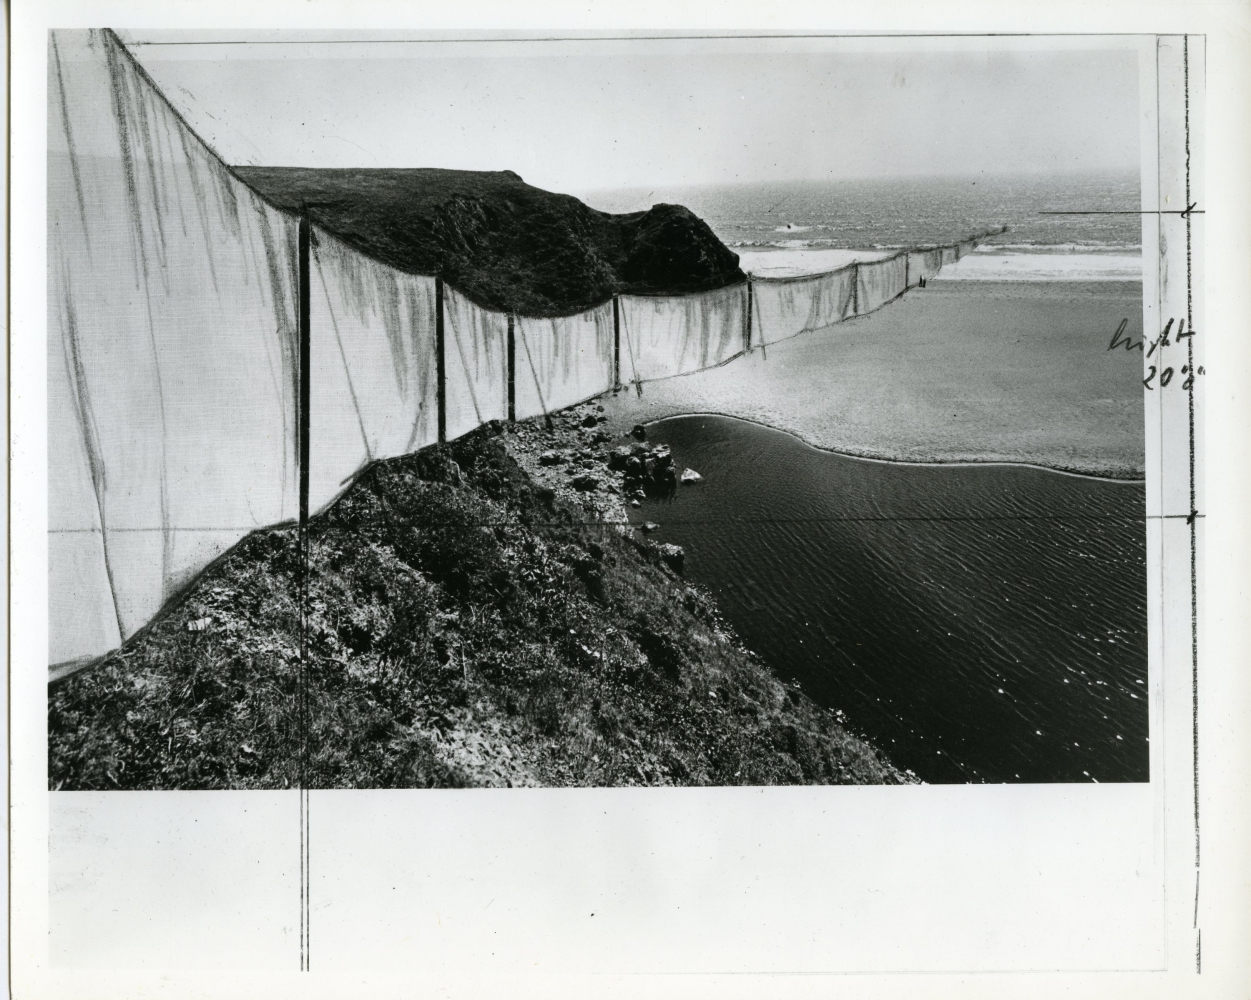 """1973-74 Christo, detail of """"Running Fence (Project for Marin Sonoma County - California)"""""""